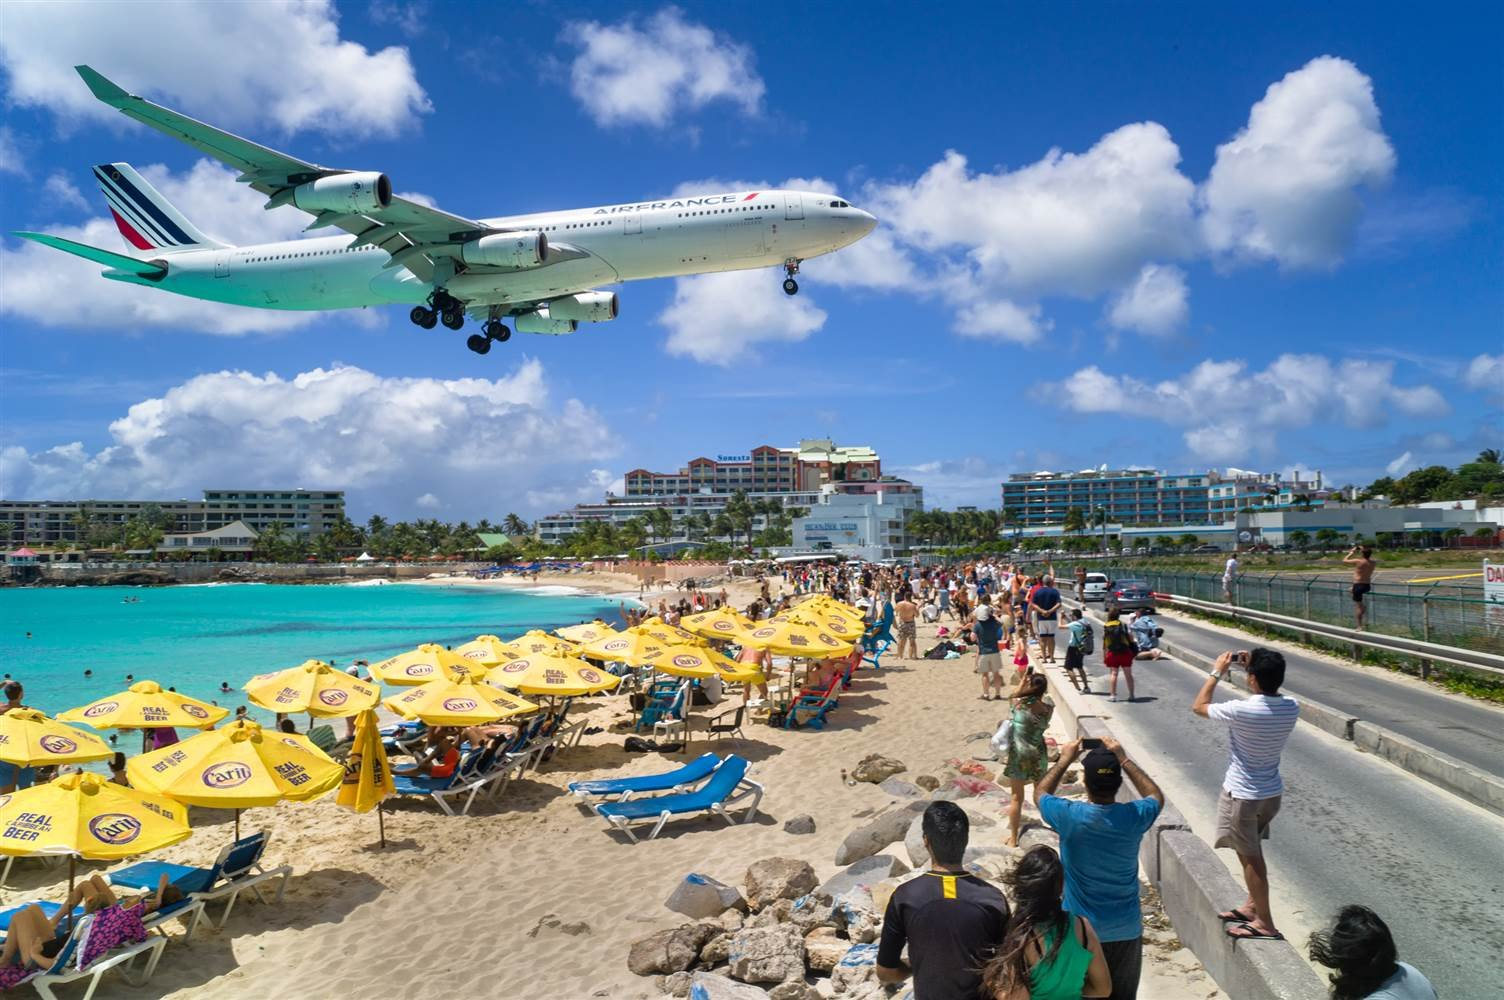 A commercial airliner lands at Princess Juliana International Airport on St. Maarten. (Adam Mukamal / Getty Images file)